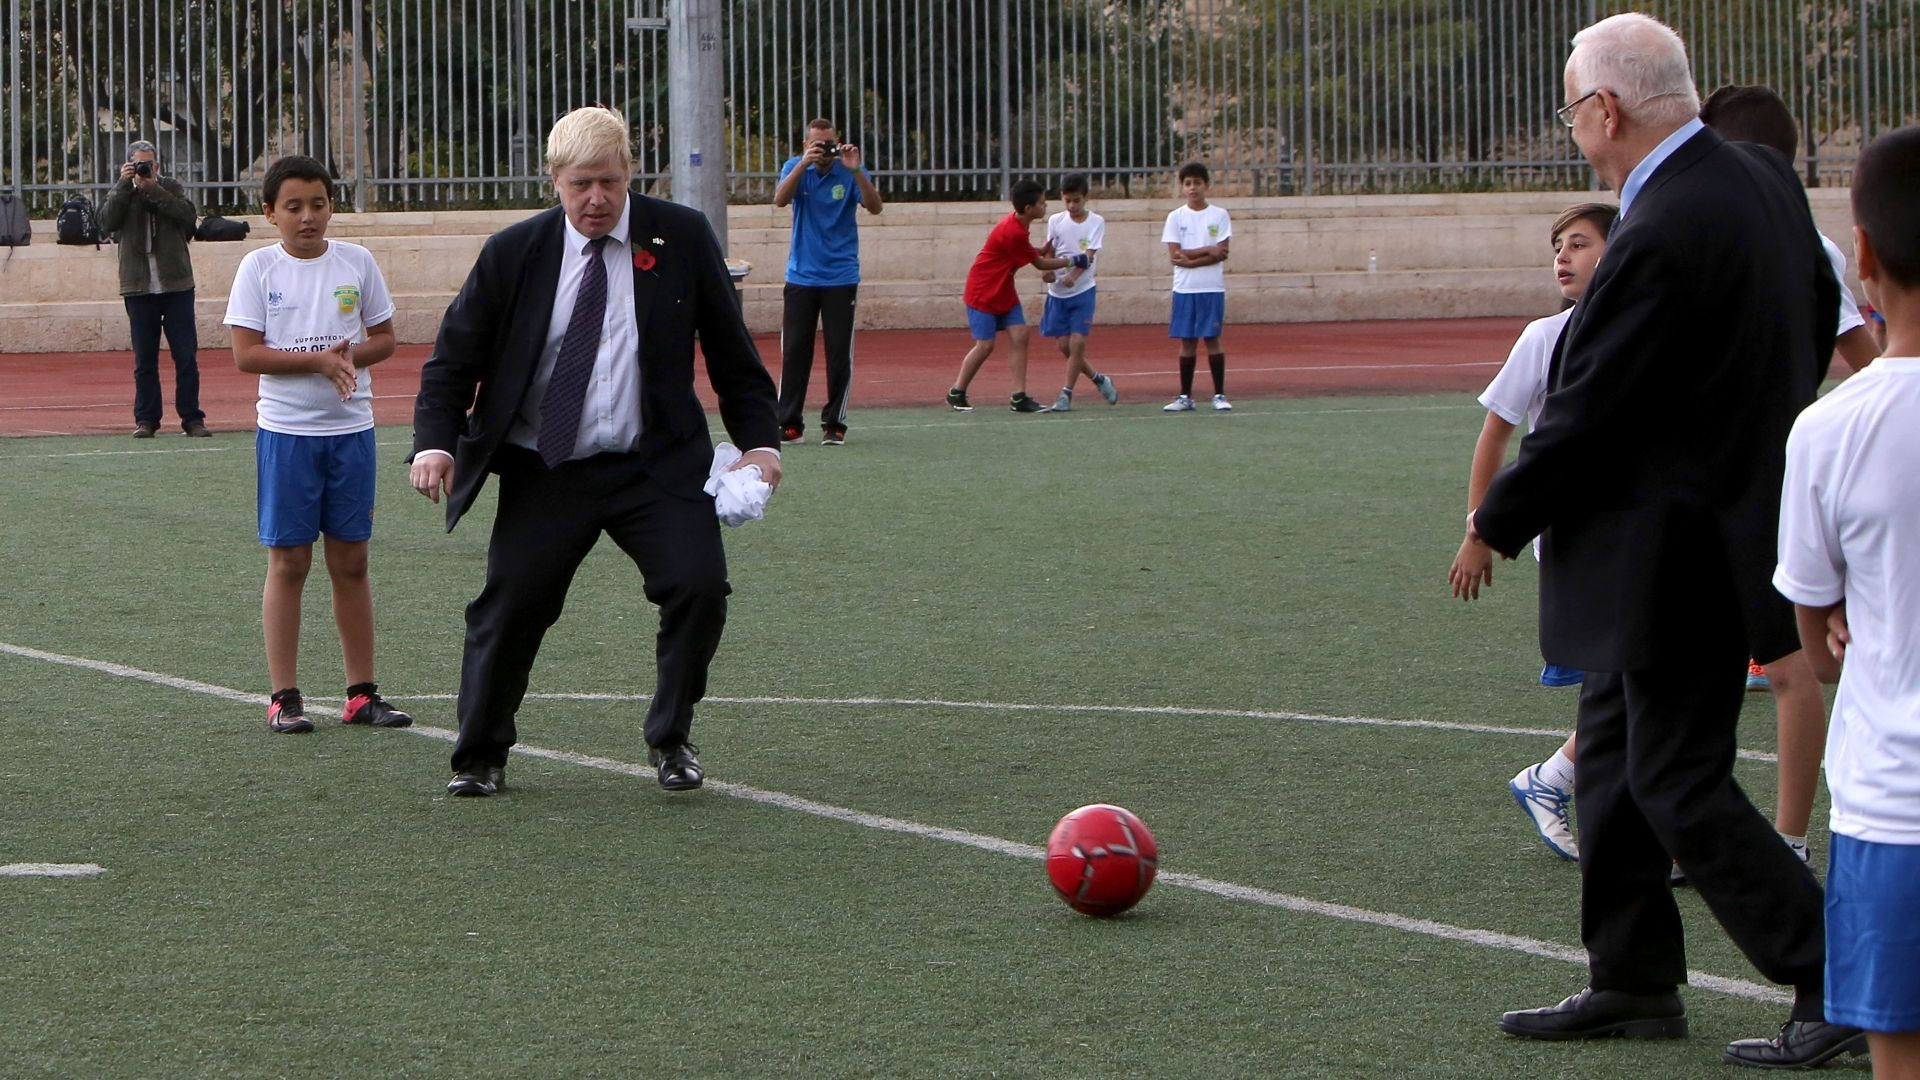 Boris Johnson attempting to play football.